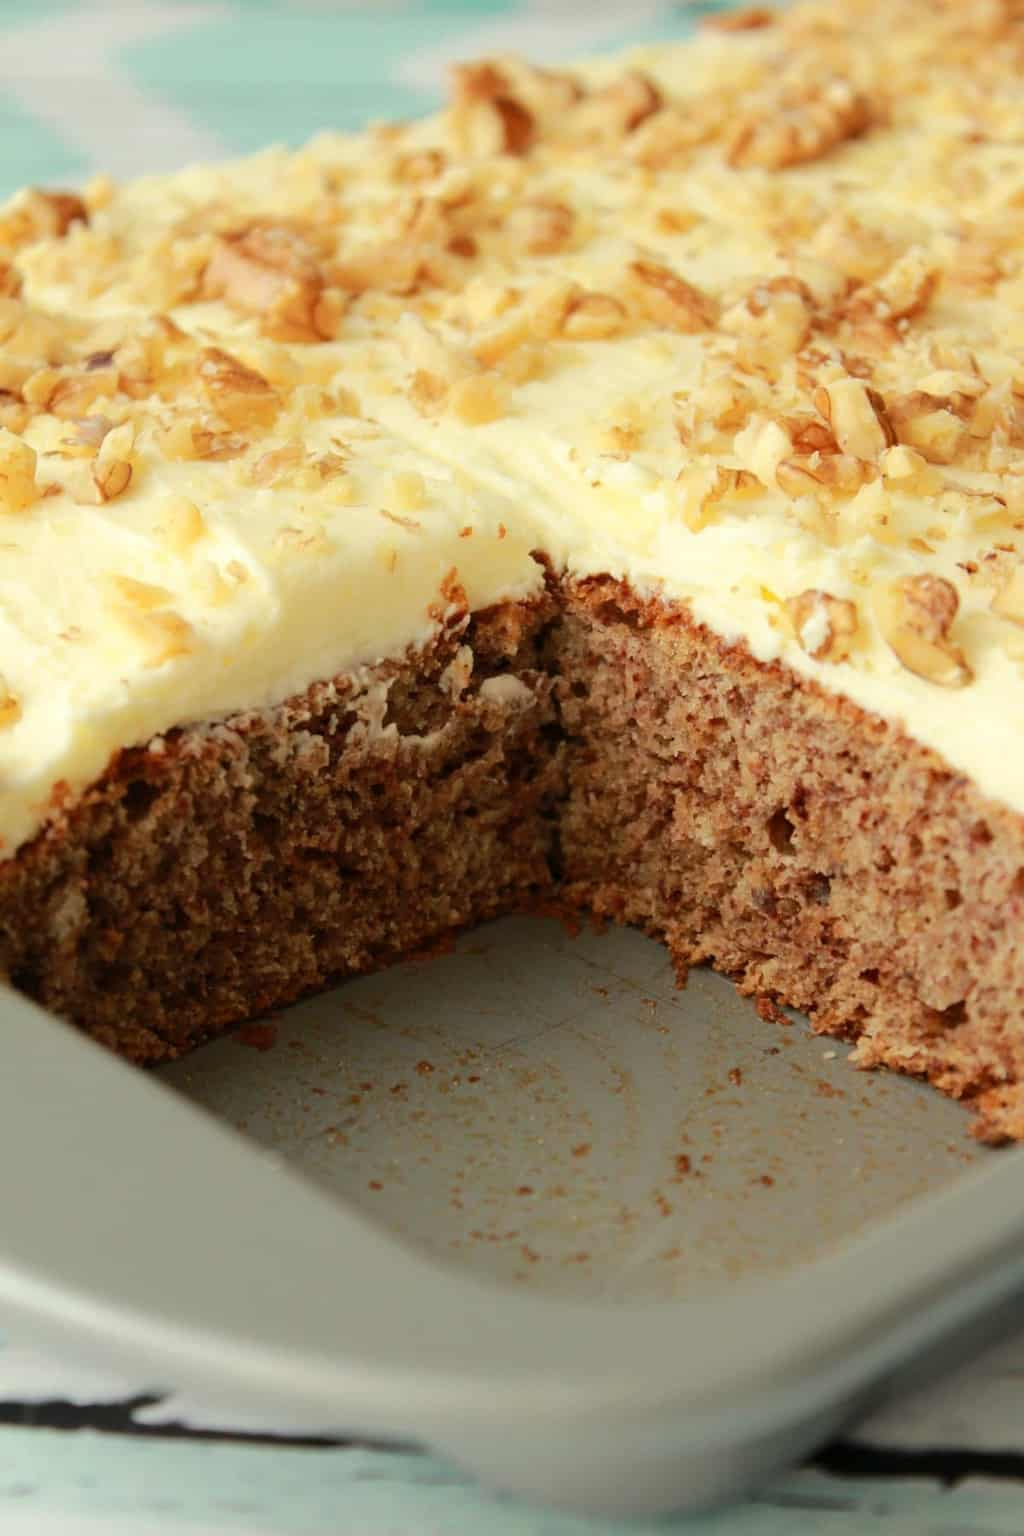 Vegan banana cake topped with lemon frosting and crushed walnuts in a quarter sheet pan with one slice removed.